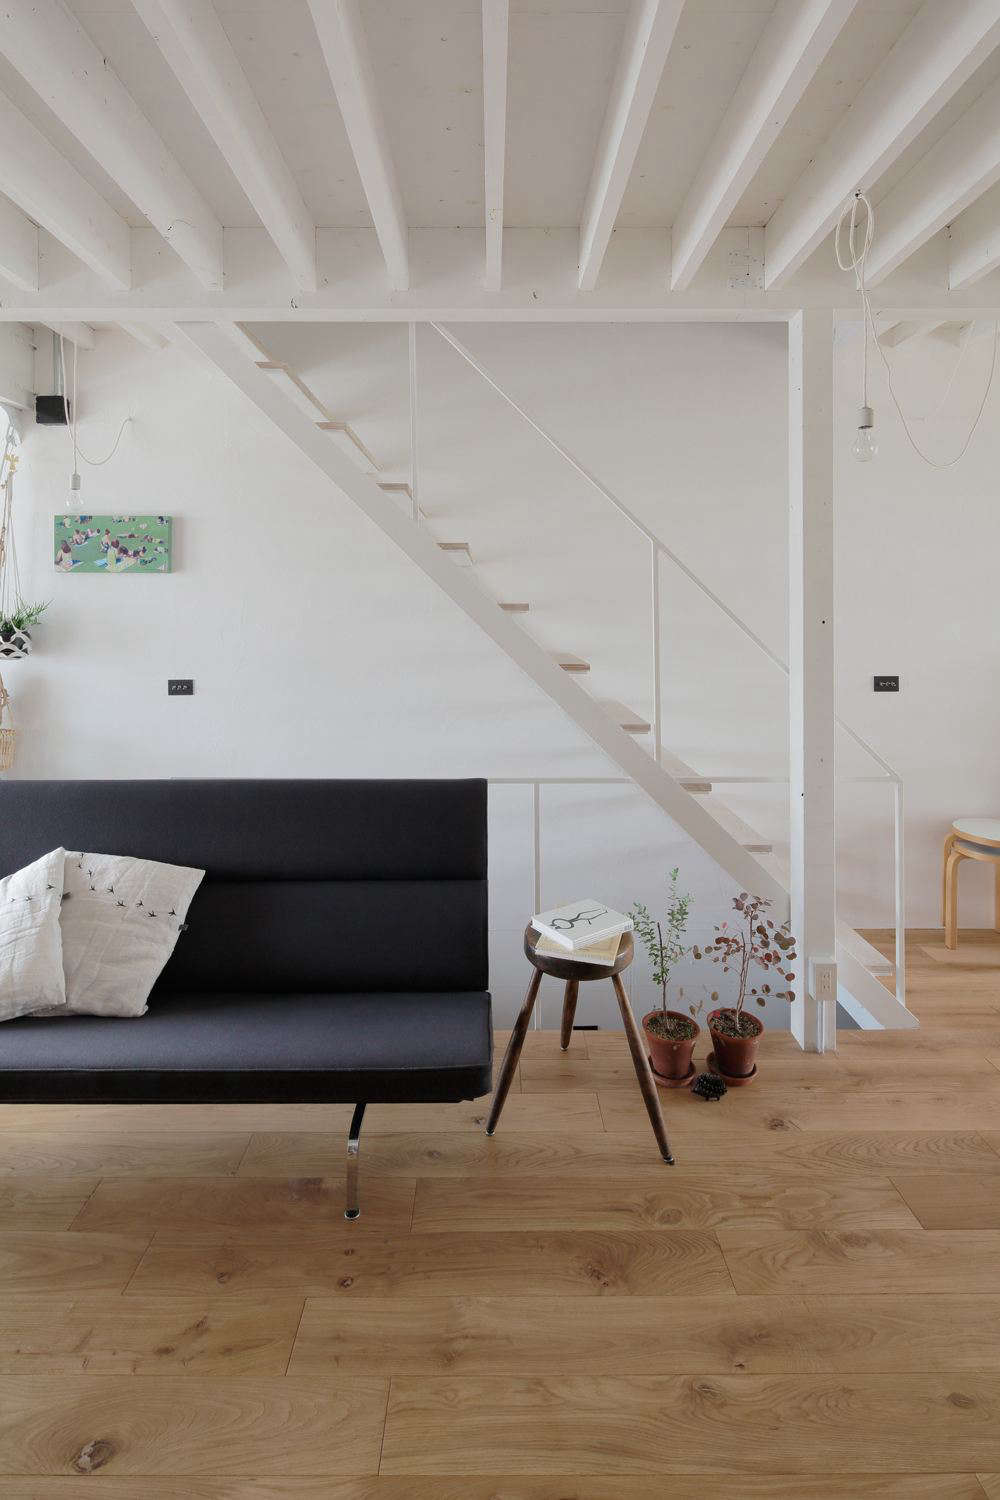 The ceiling beams and wooden stair treads play off each other in a rhythmic pattern. &#8